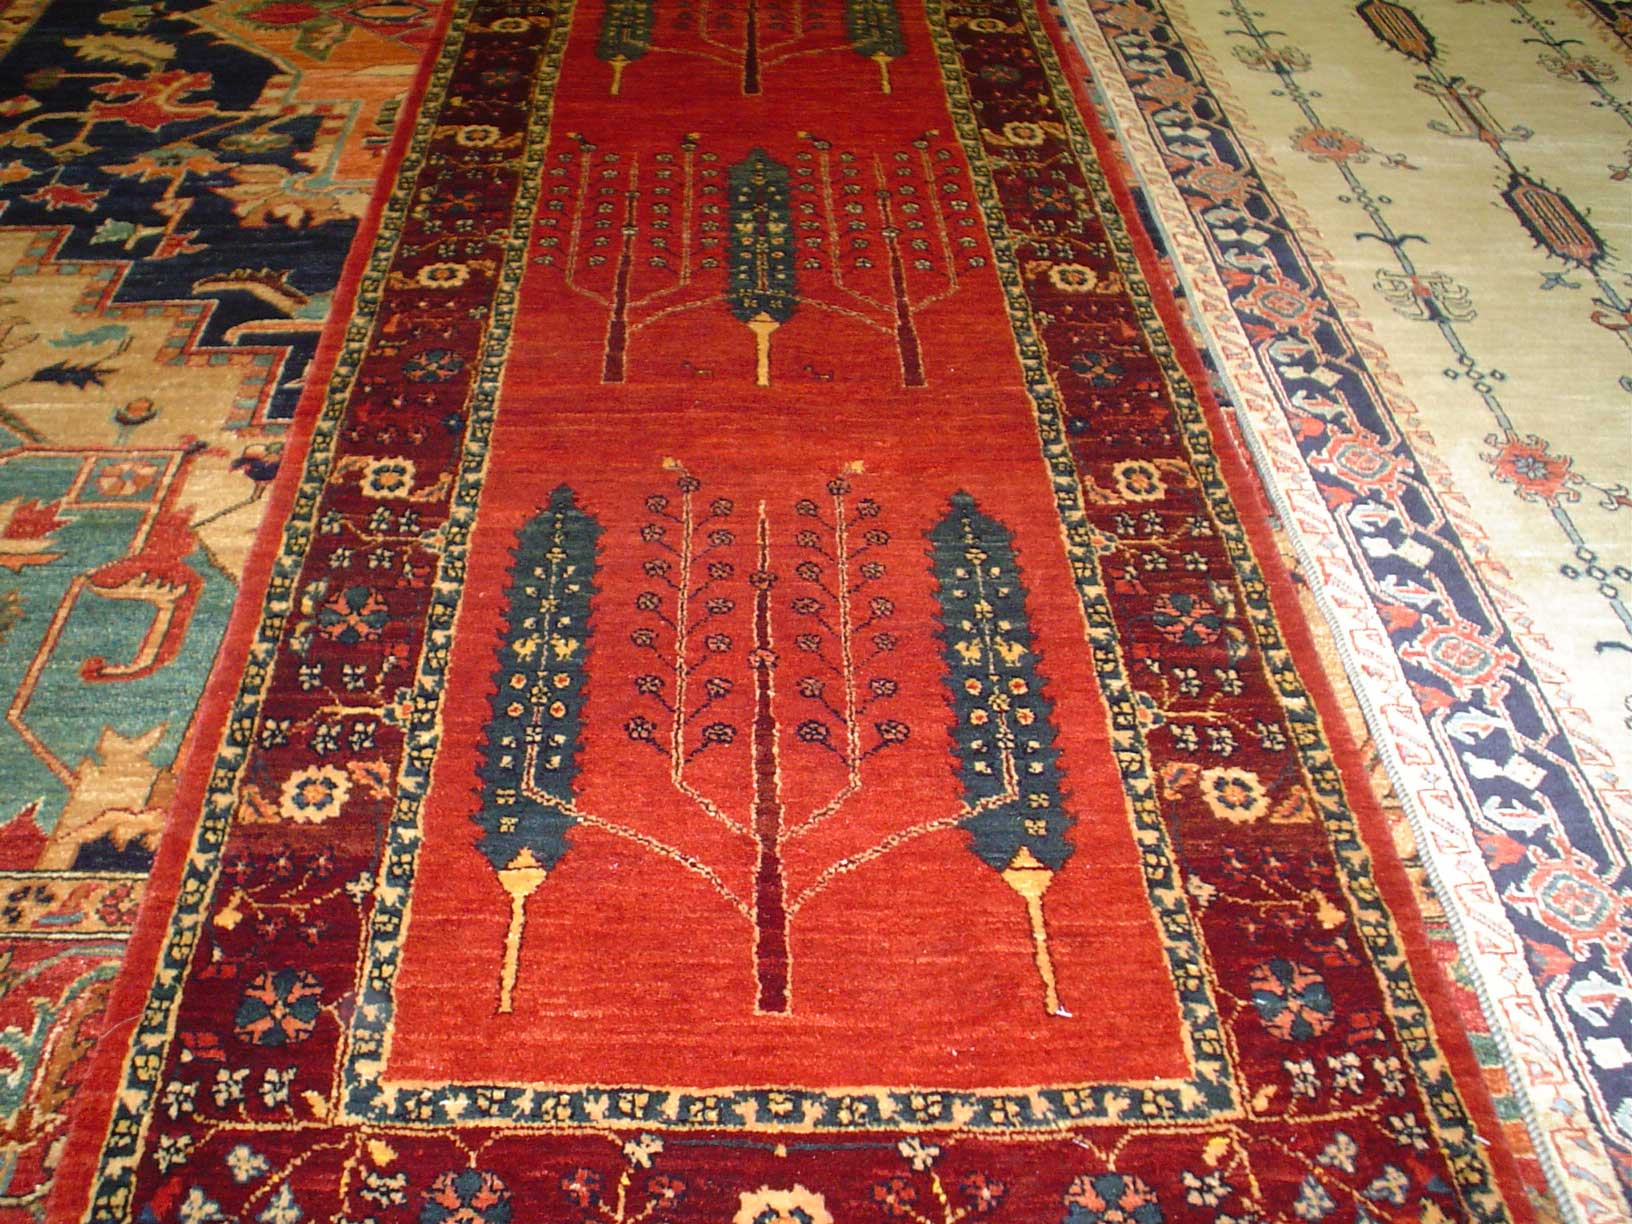 "2'7 x 12'3"" Luri runner with Cypress trees and a Tree of Life design. Sold."